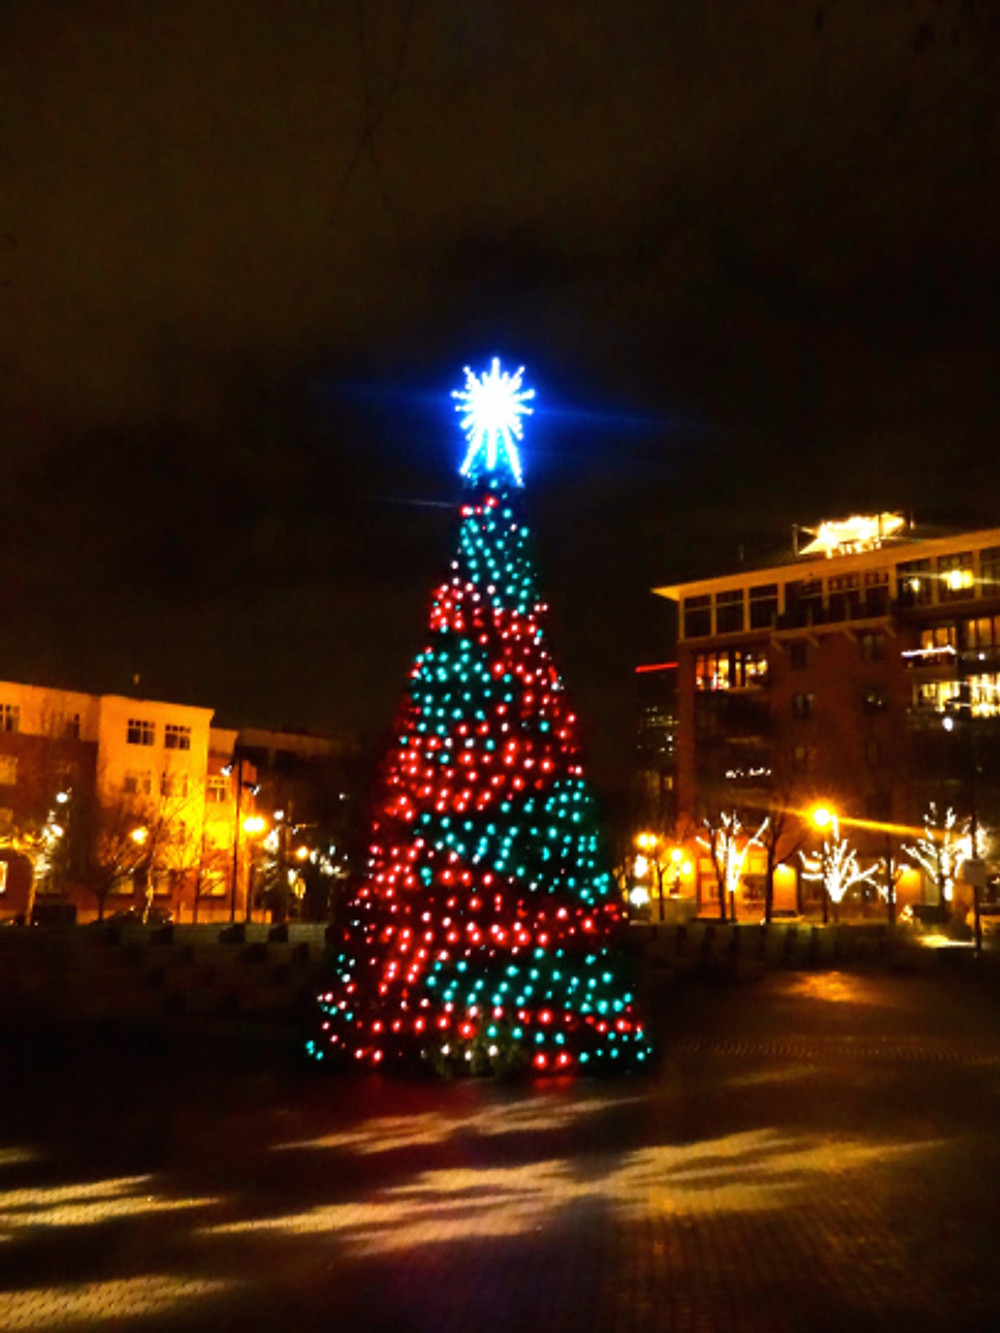 Wandered around Jamison Square after dinner before going home and my promptly passing out midway through Love Actually. Nothing like a hubby who rubs your back every night and makes every day like Christmas :)